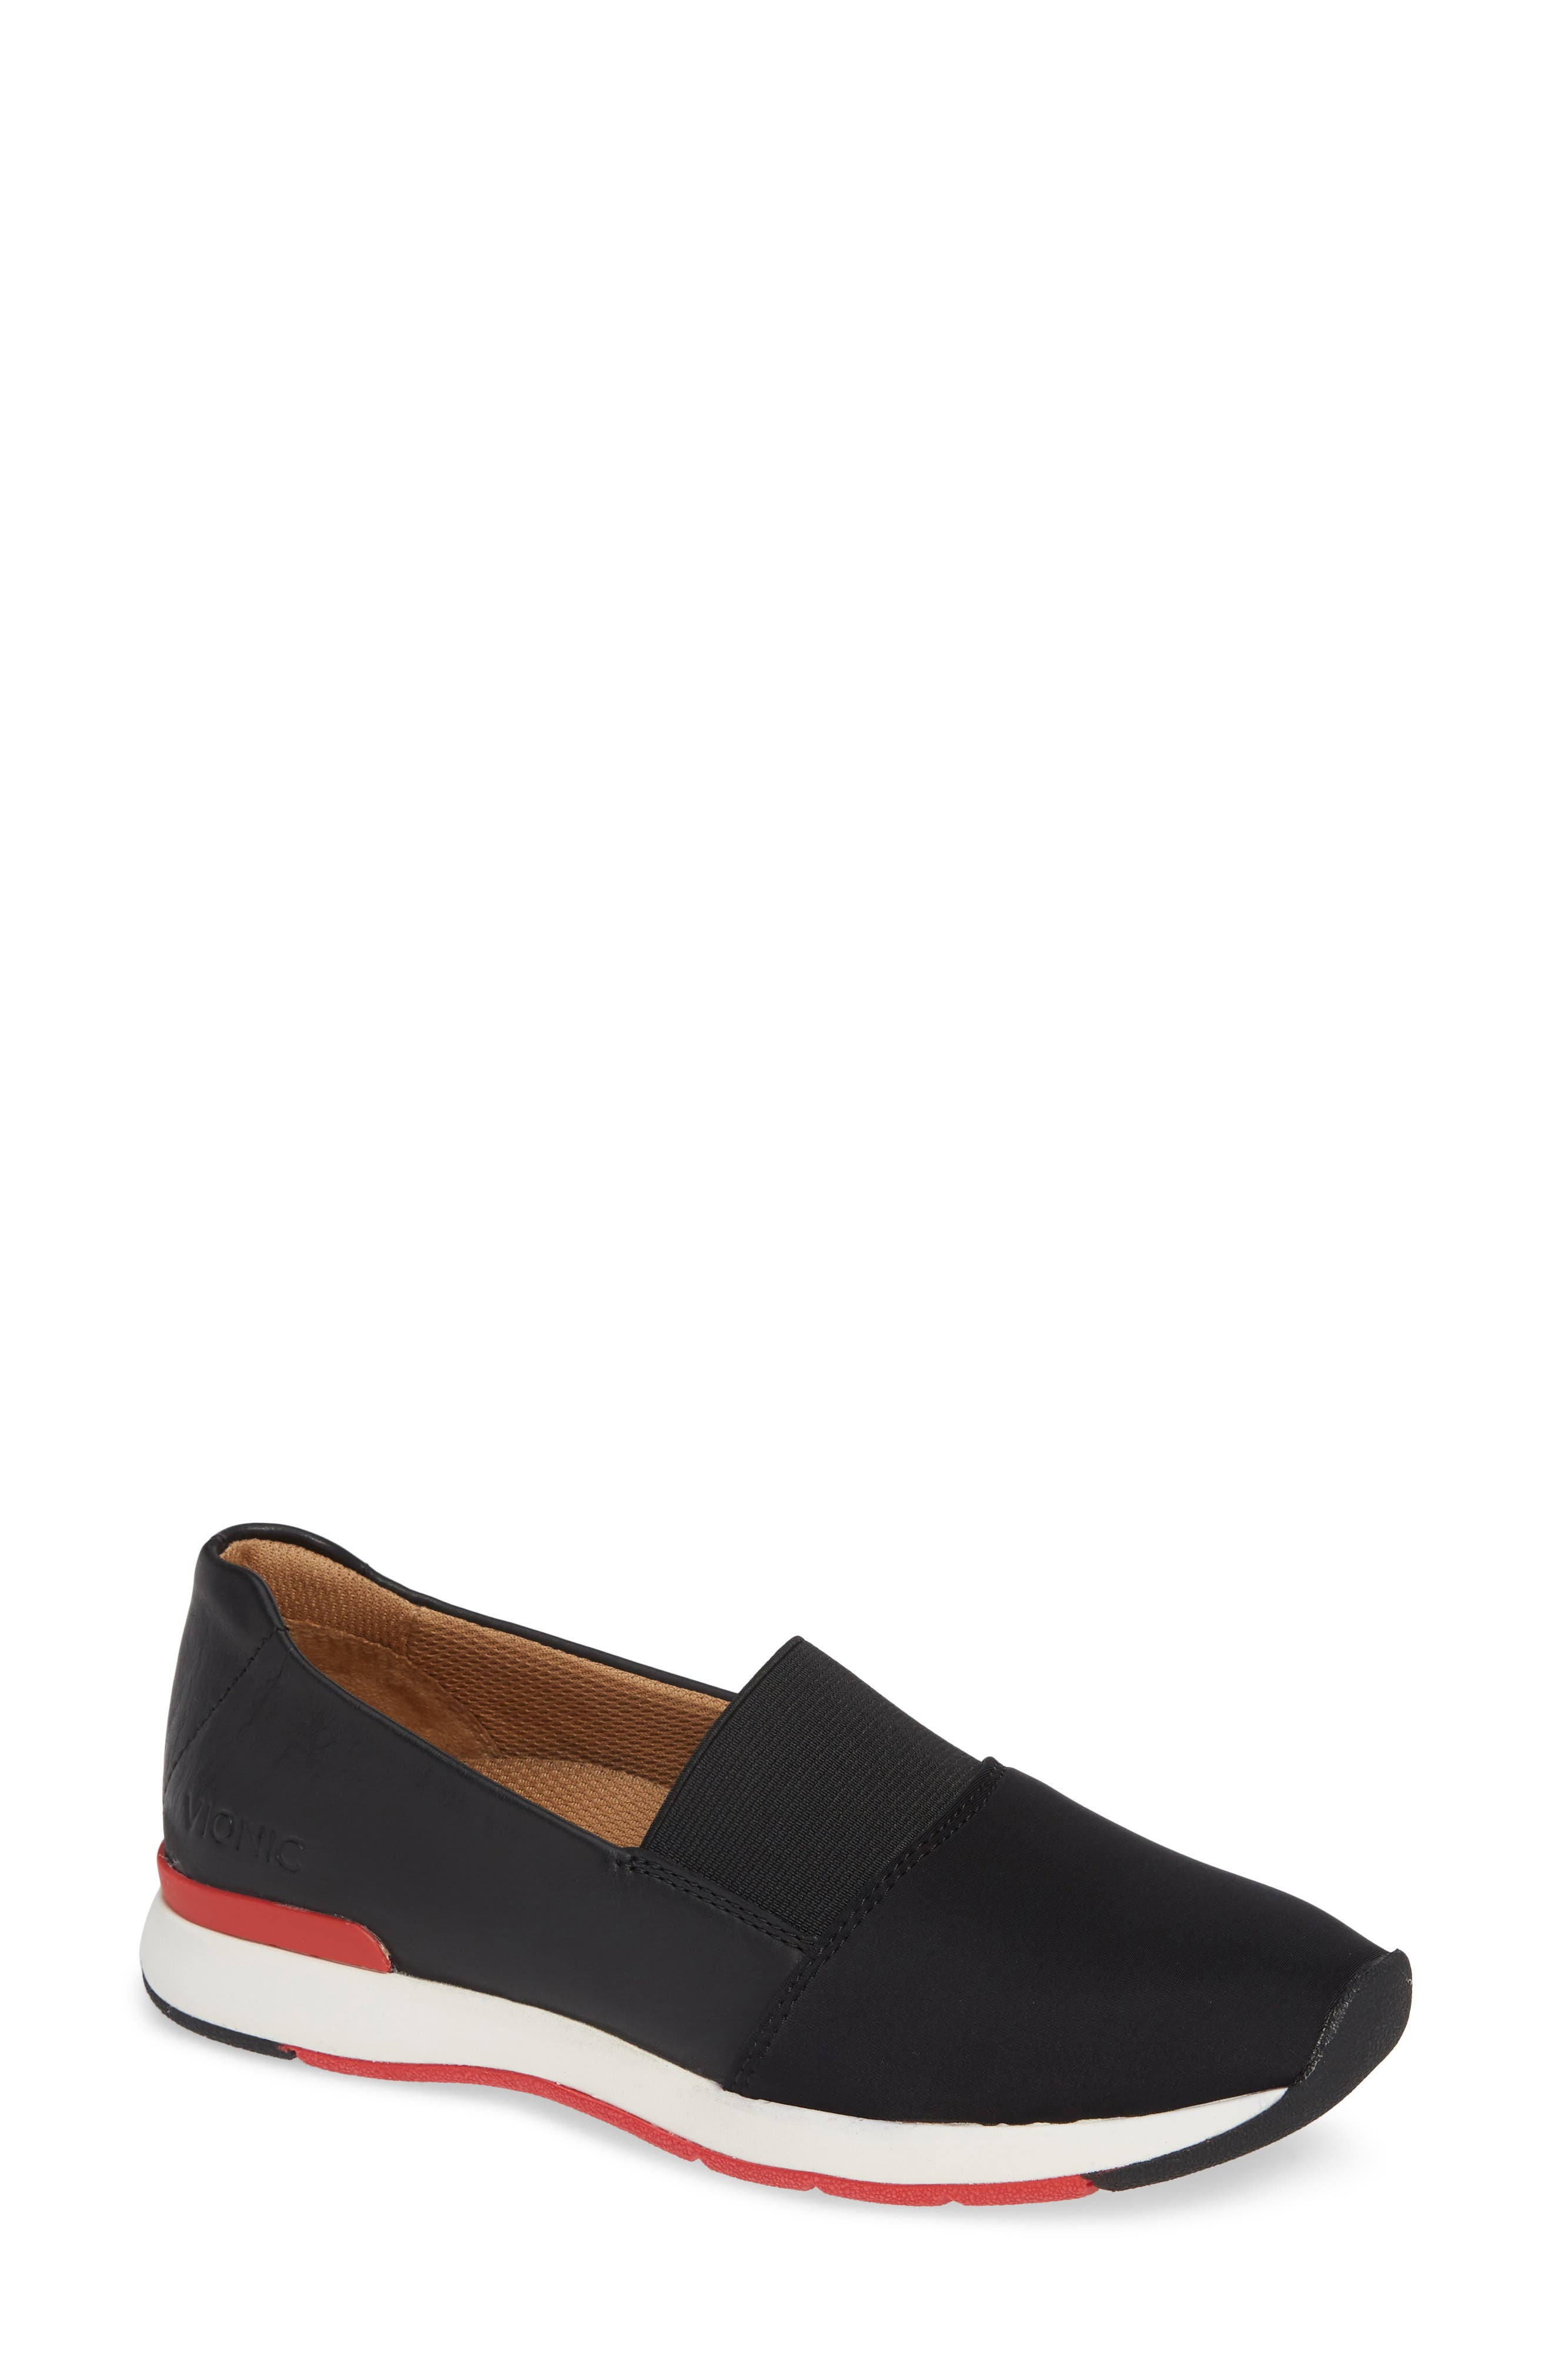 Cameo Slip-On Shoe,                             Main thumbnail 1, color,                             BLACK LEATHER NEOPRENE